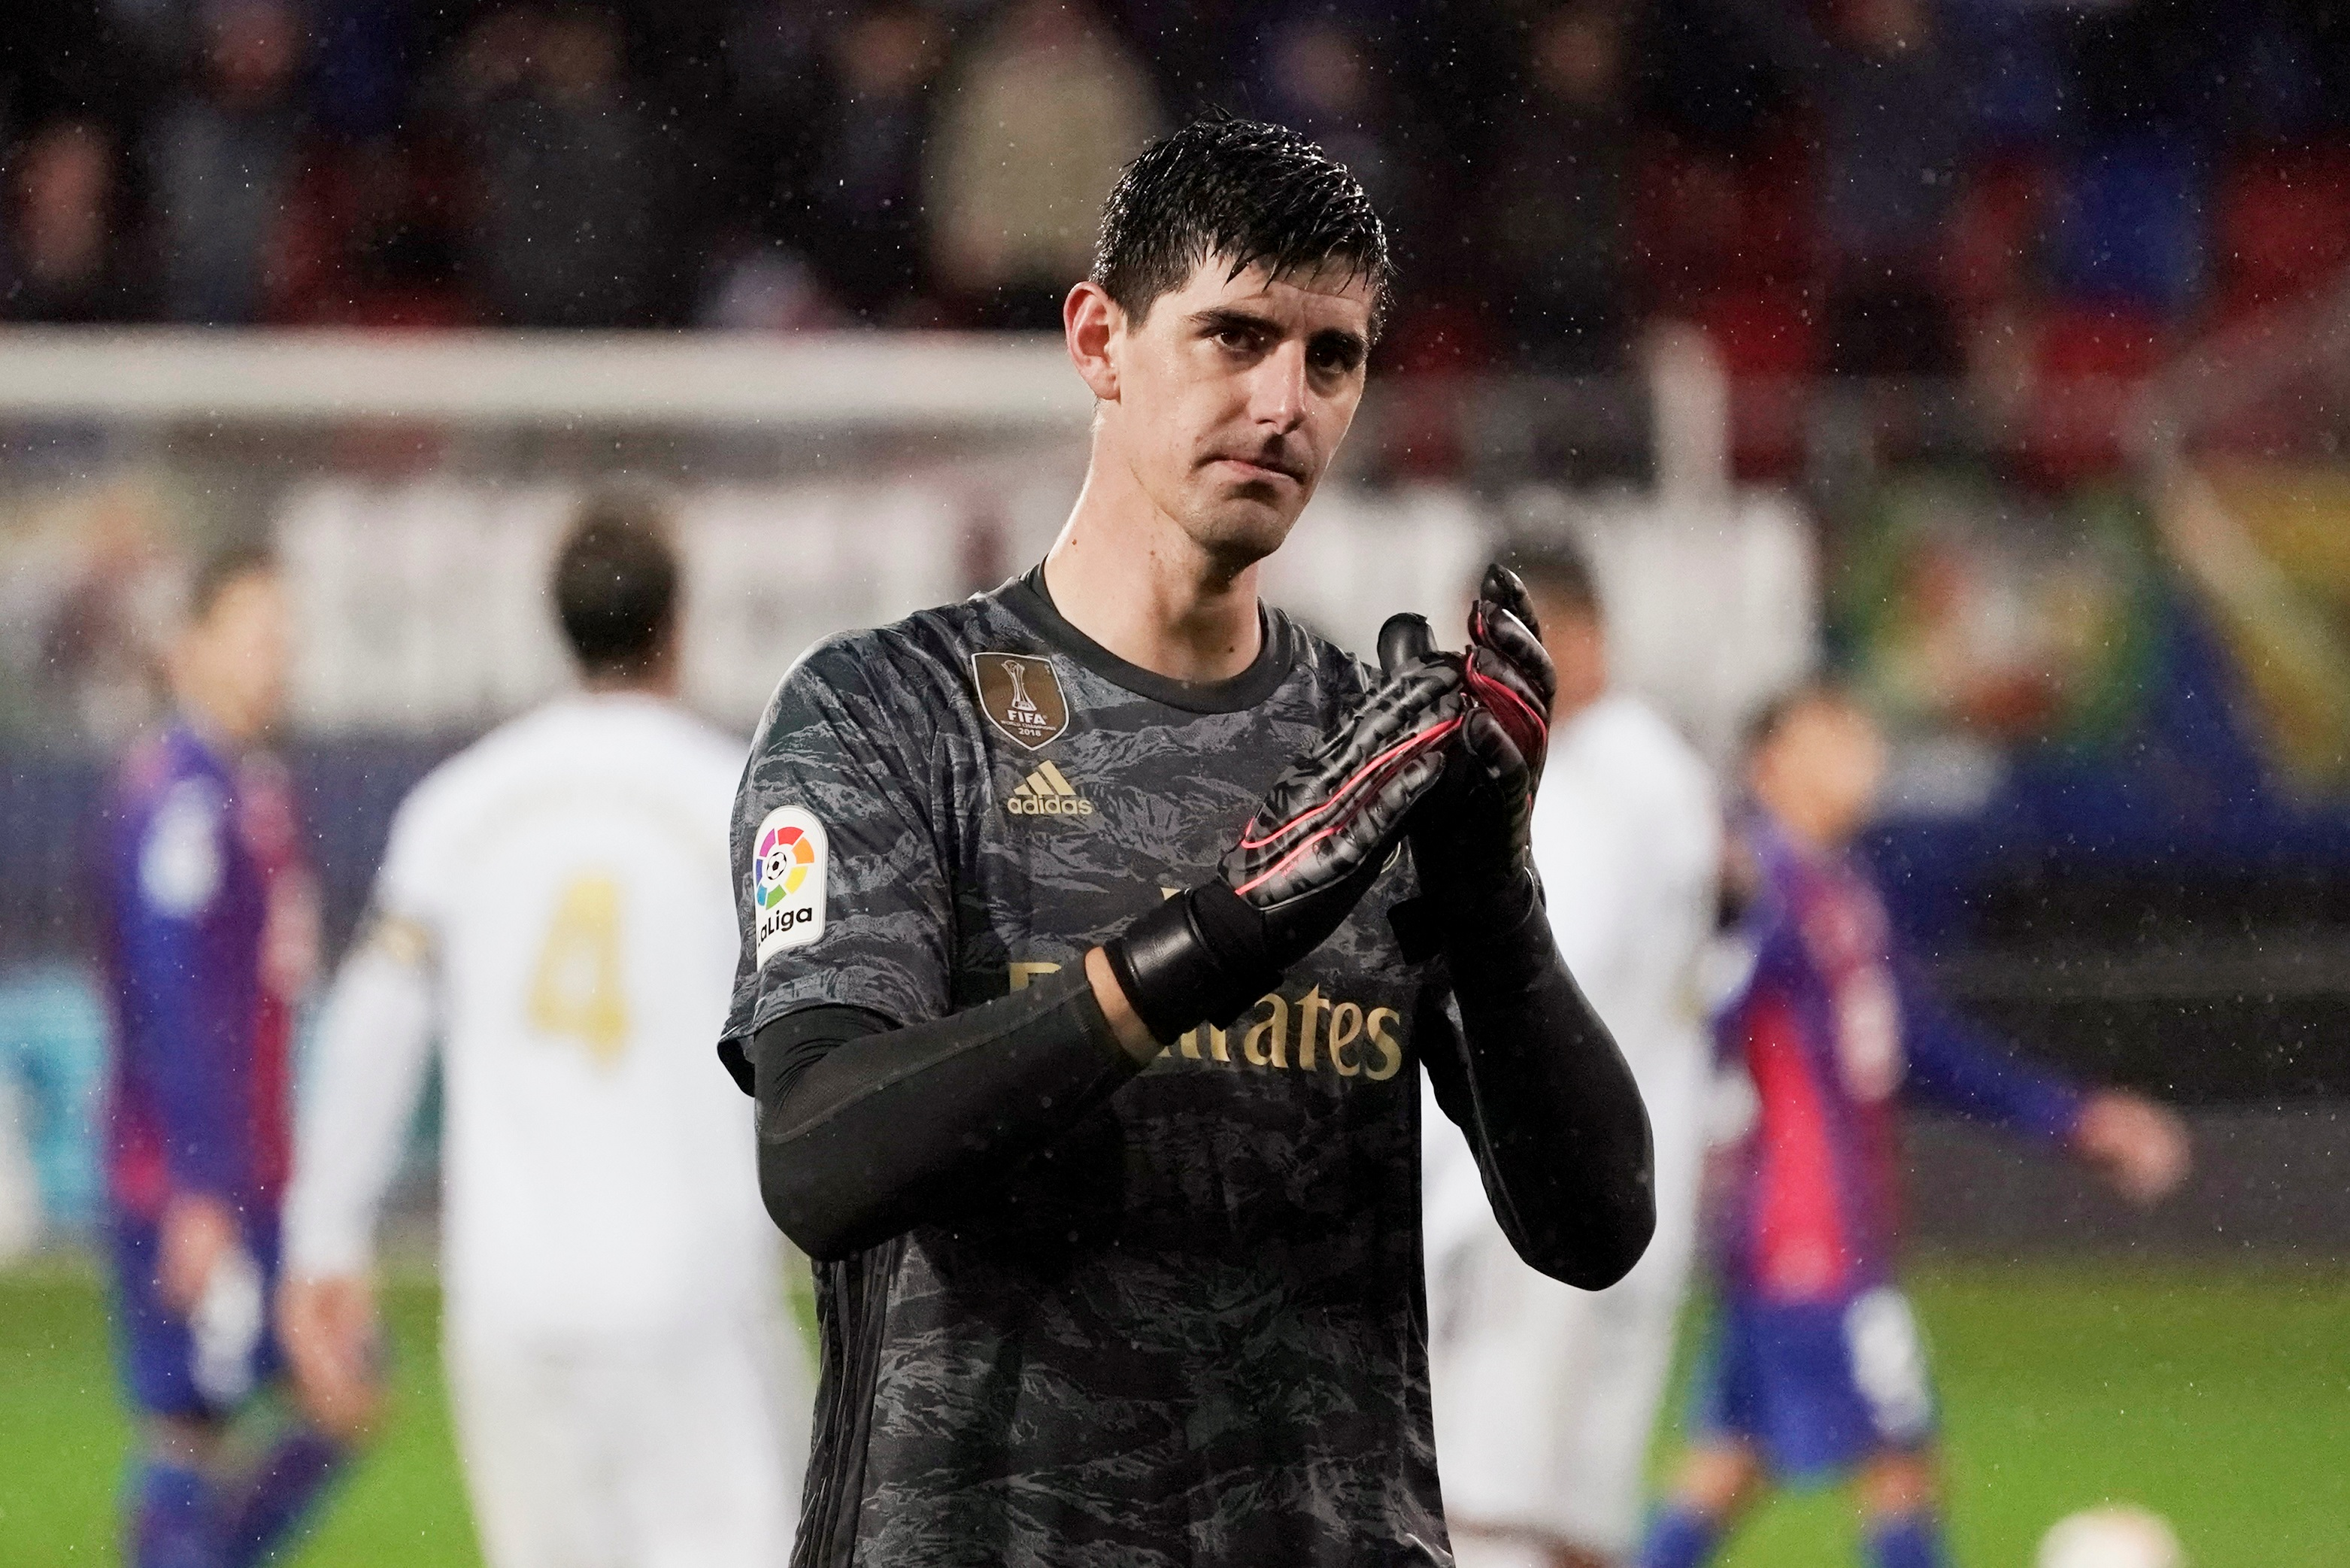 Martinez supports Courtois on being